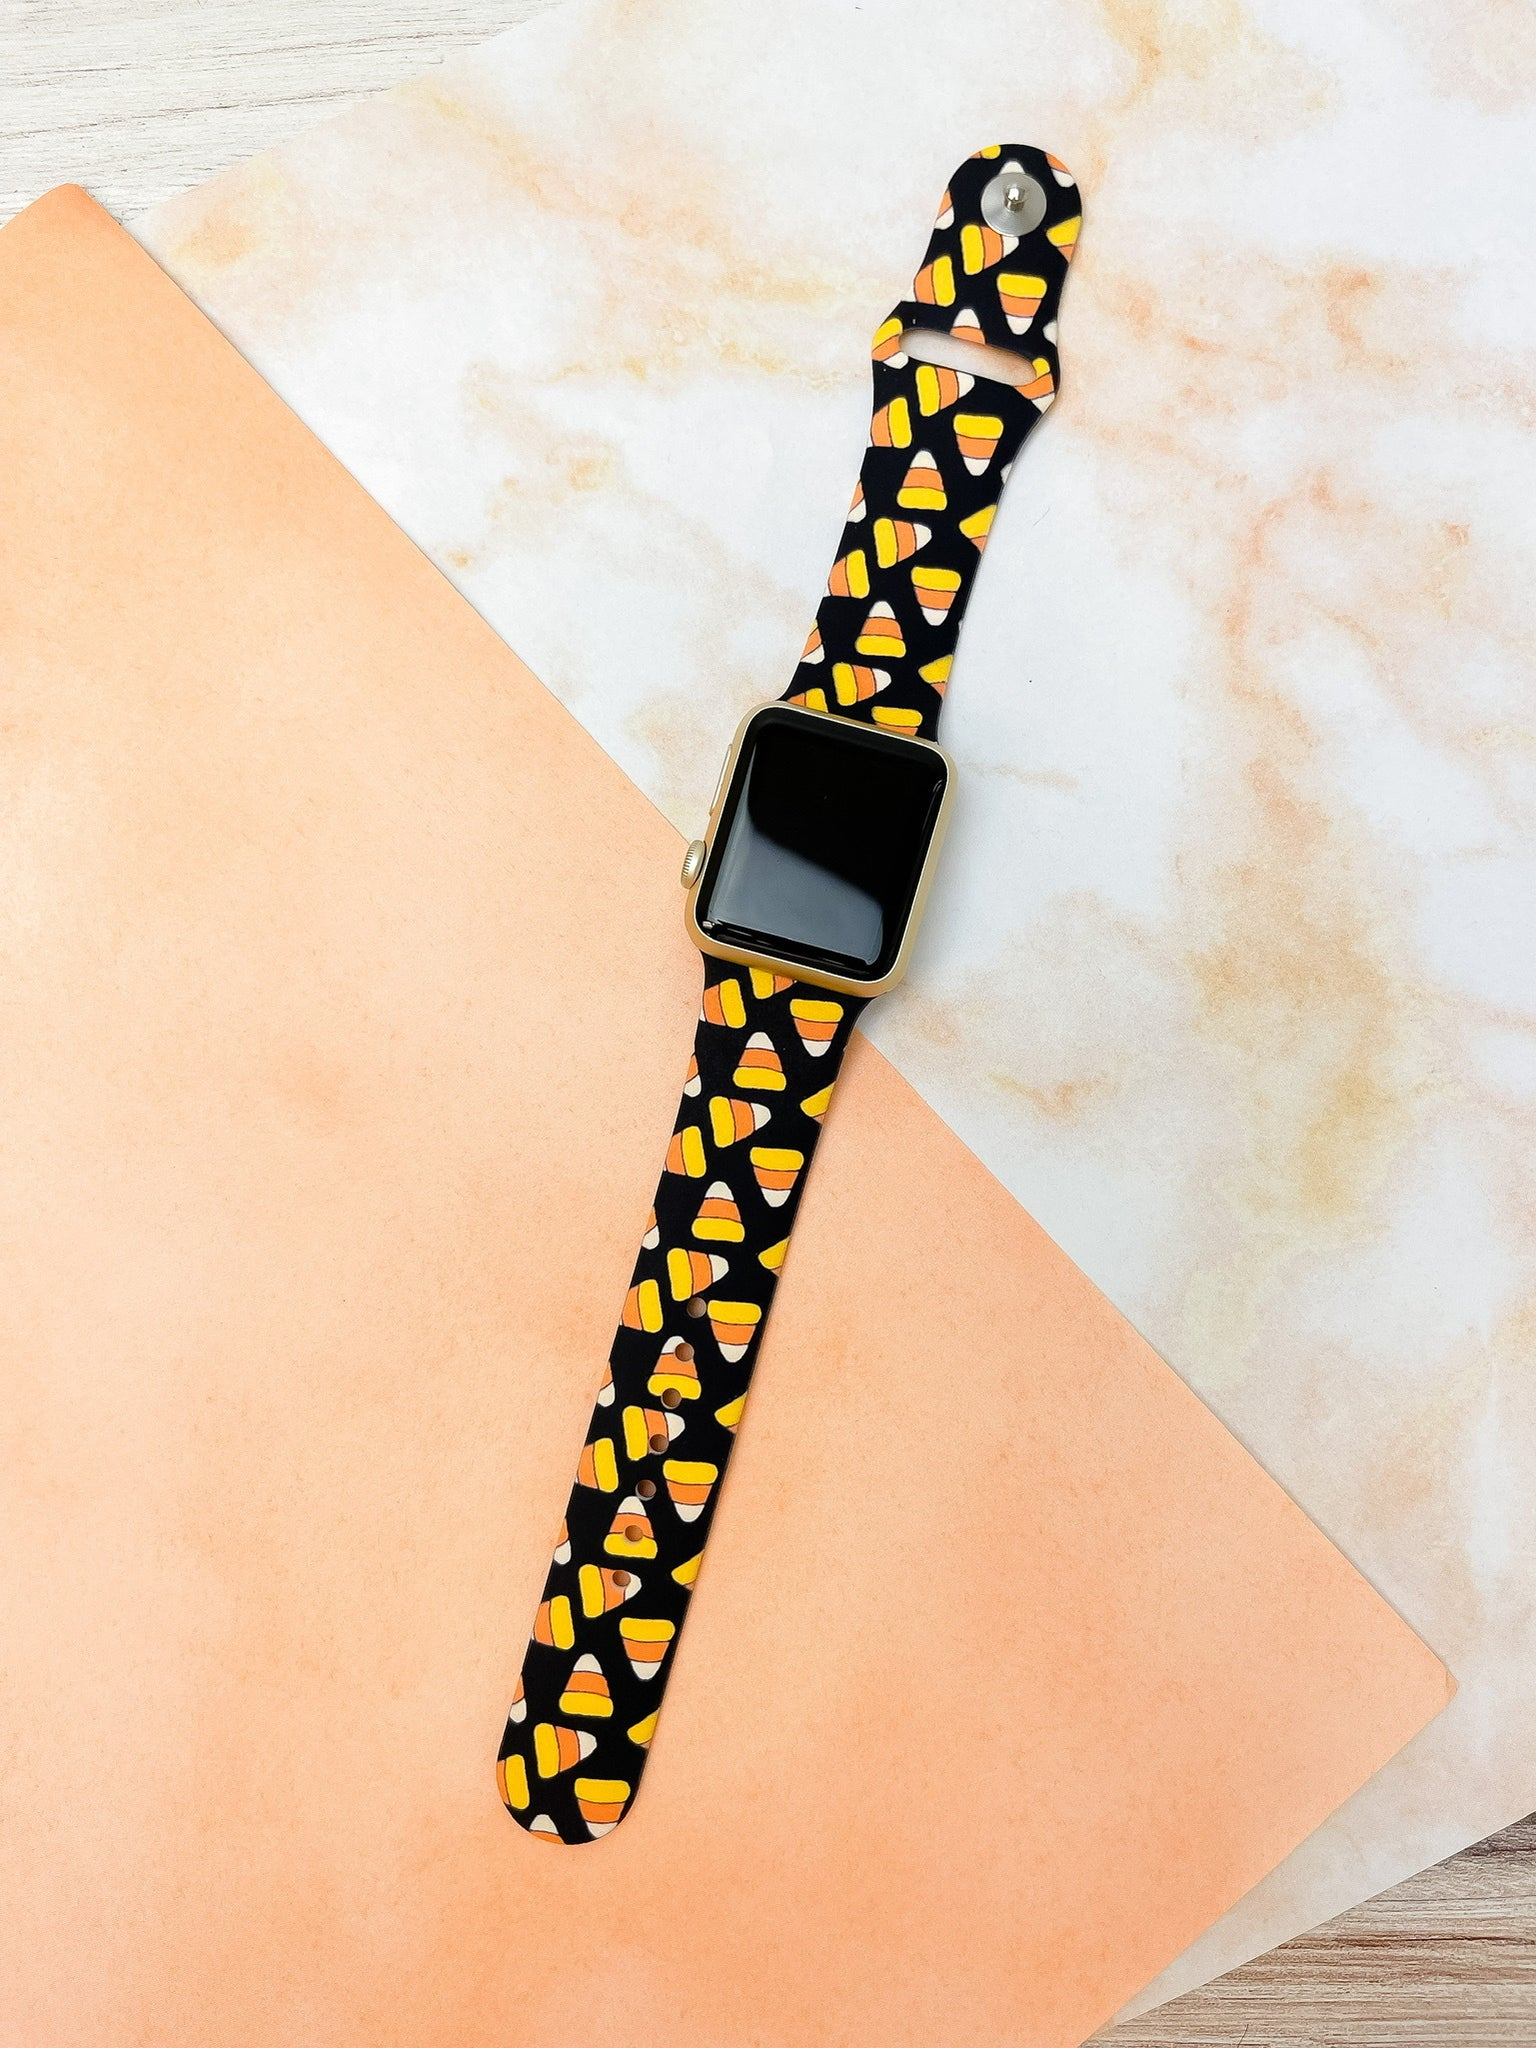 Candy Corn Printed Silicone Watch Band